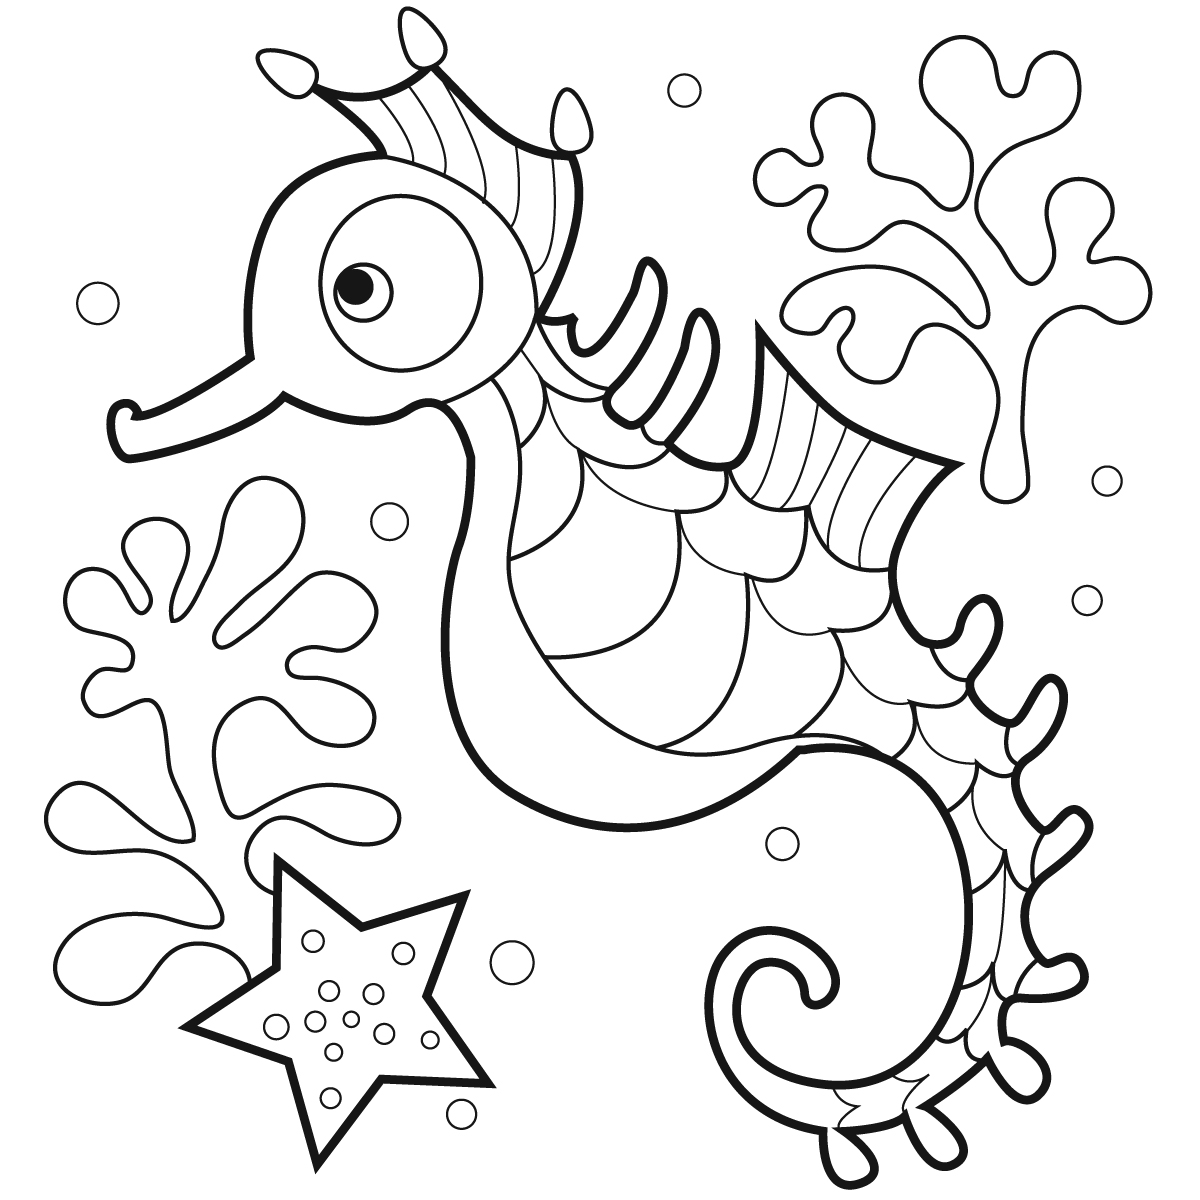 pictures of seahorses to colour 40 seahorse shape templates crafts colouring pages pictures of to seahorses colour